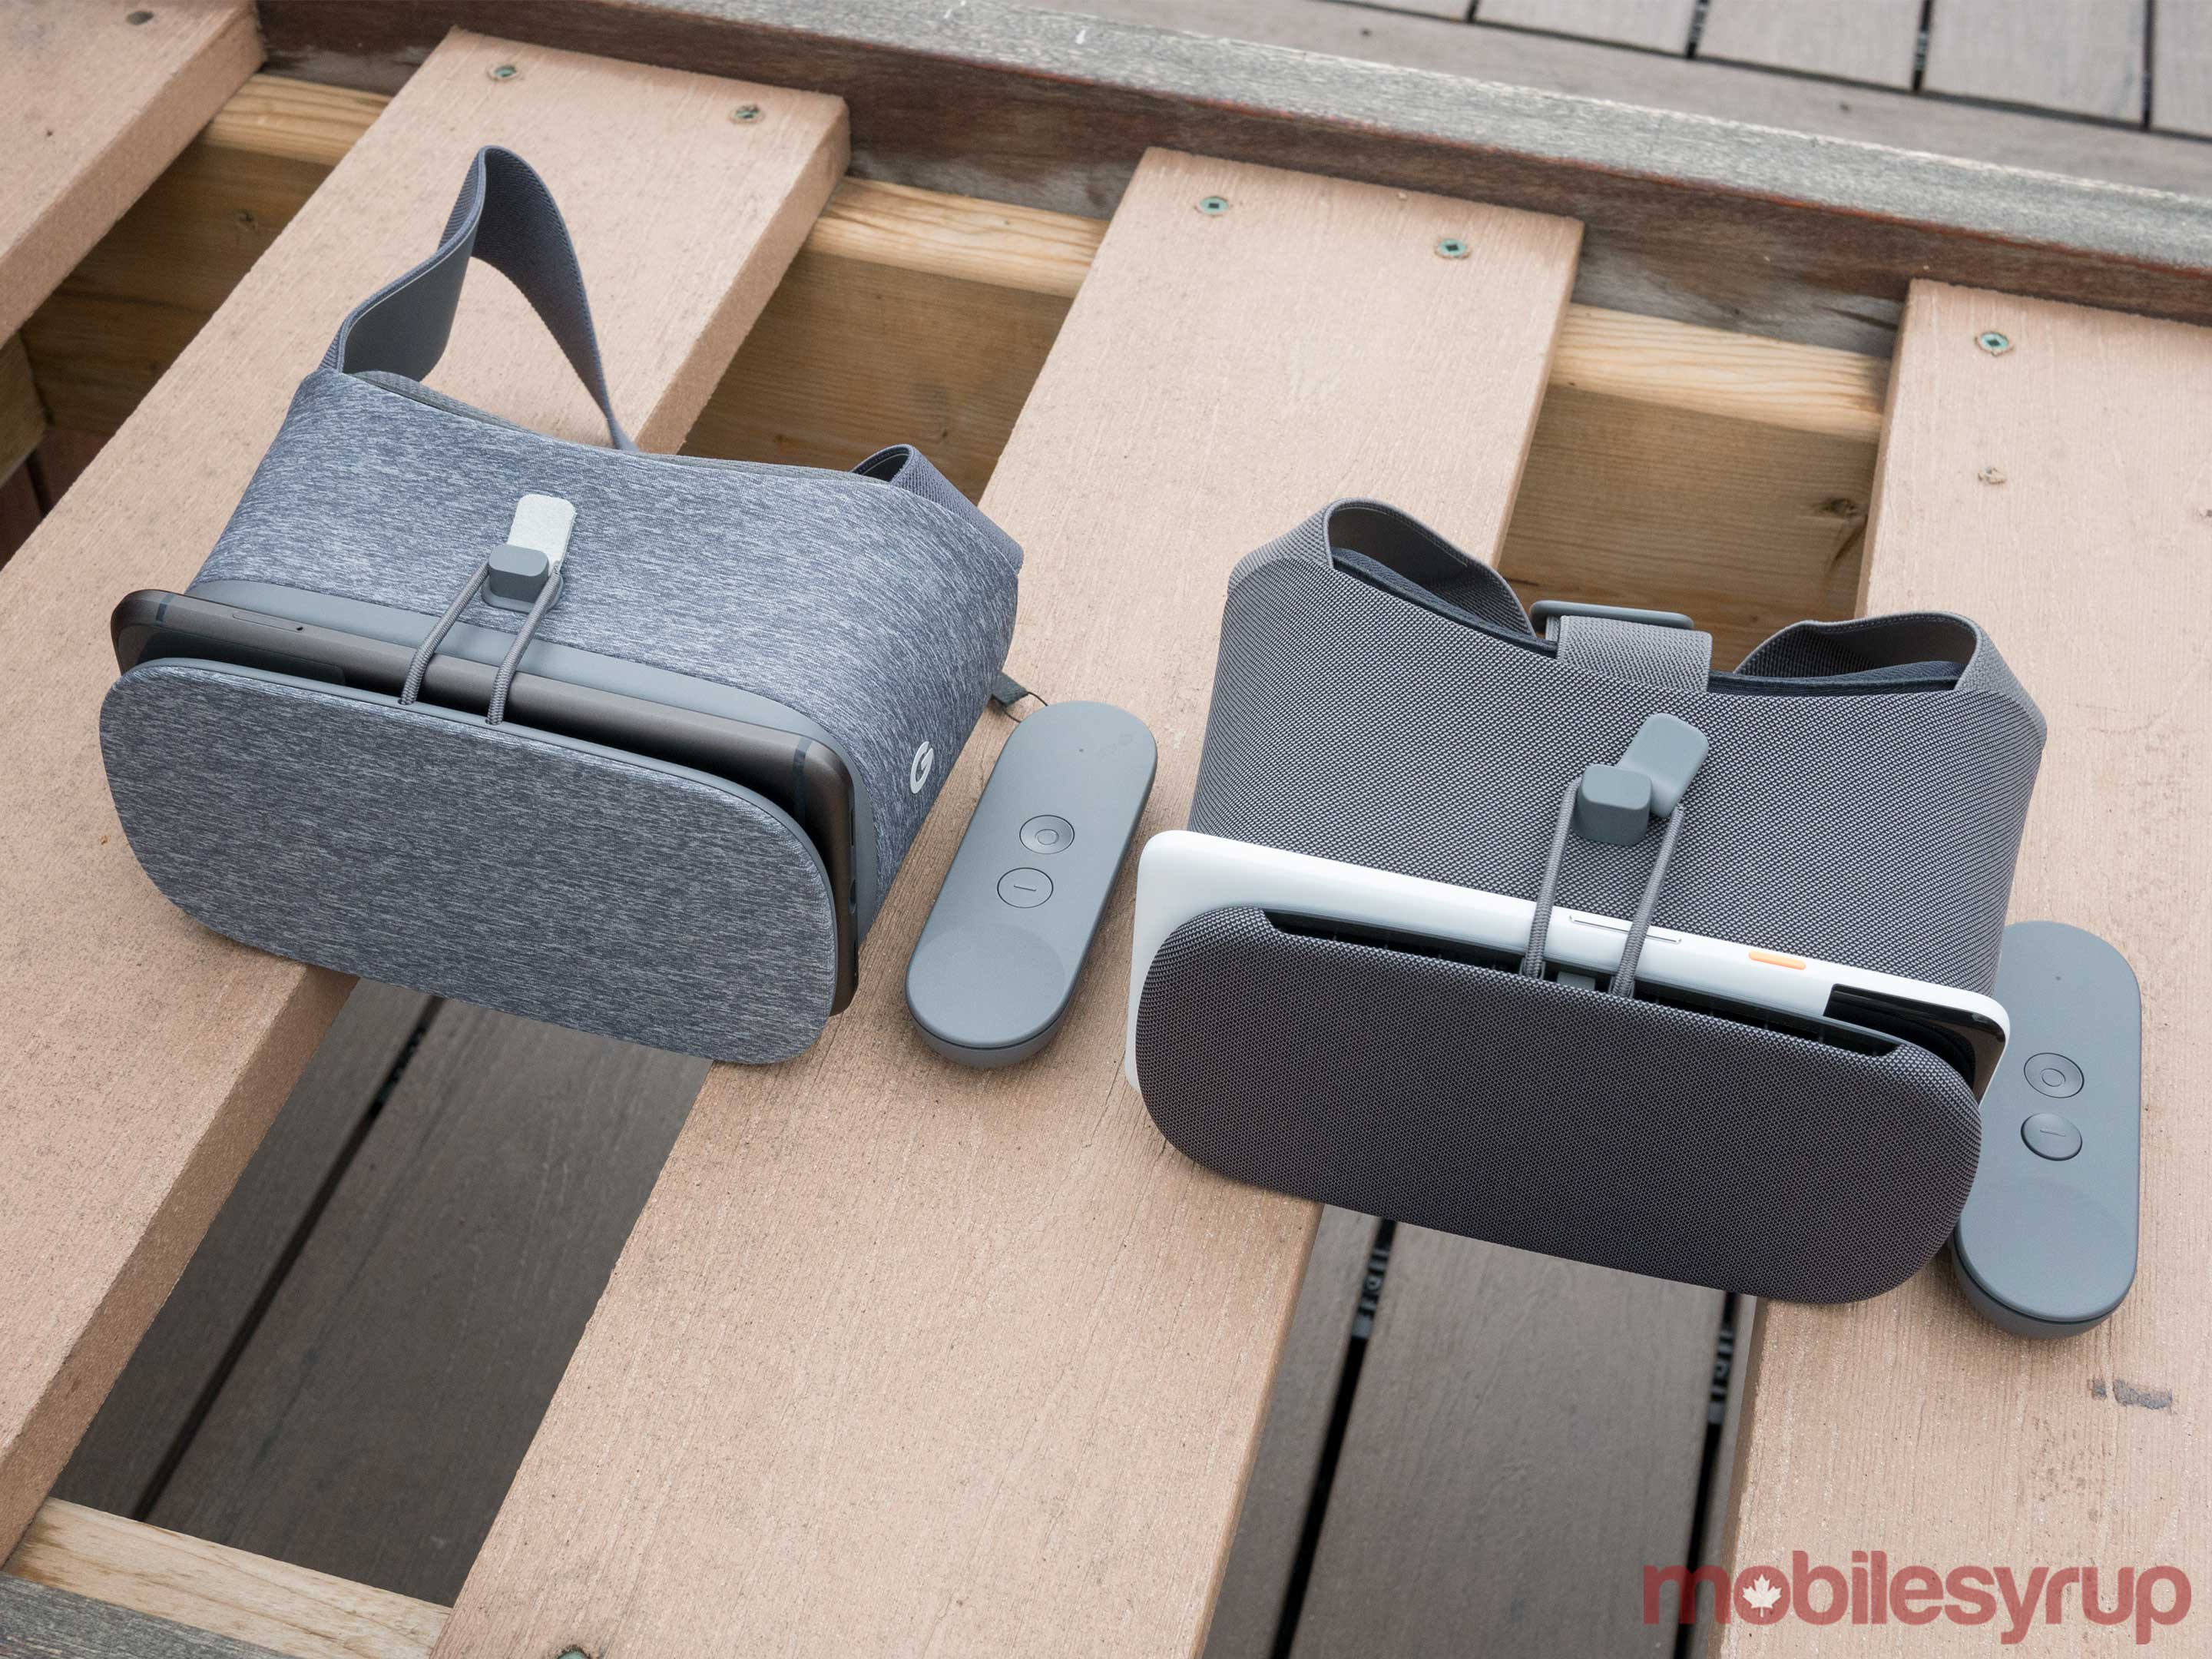 New Daydream View vs old Daydream View